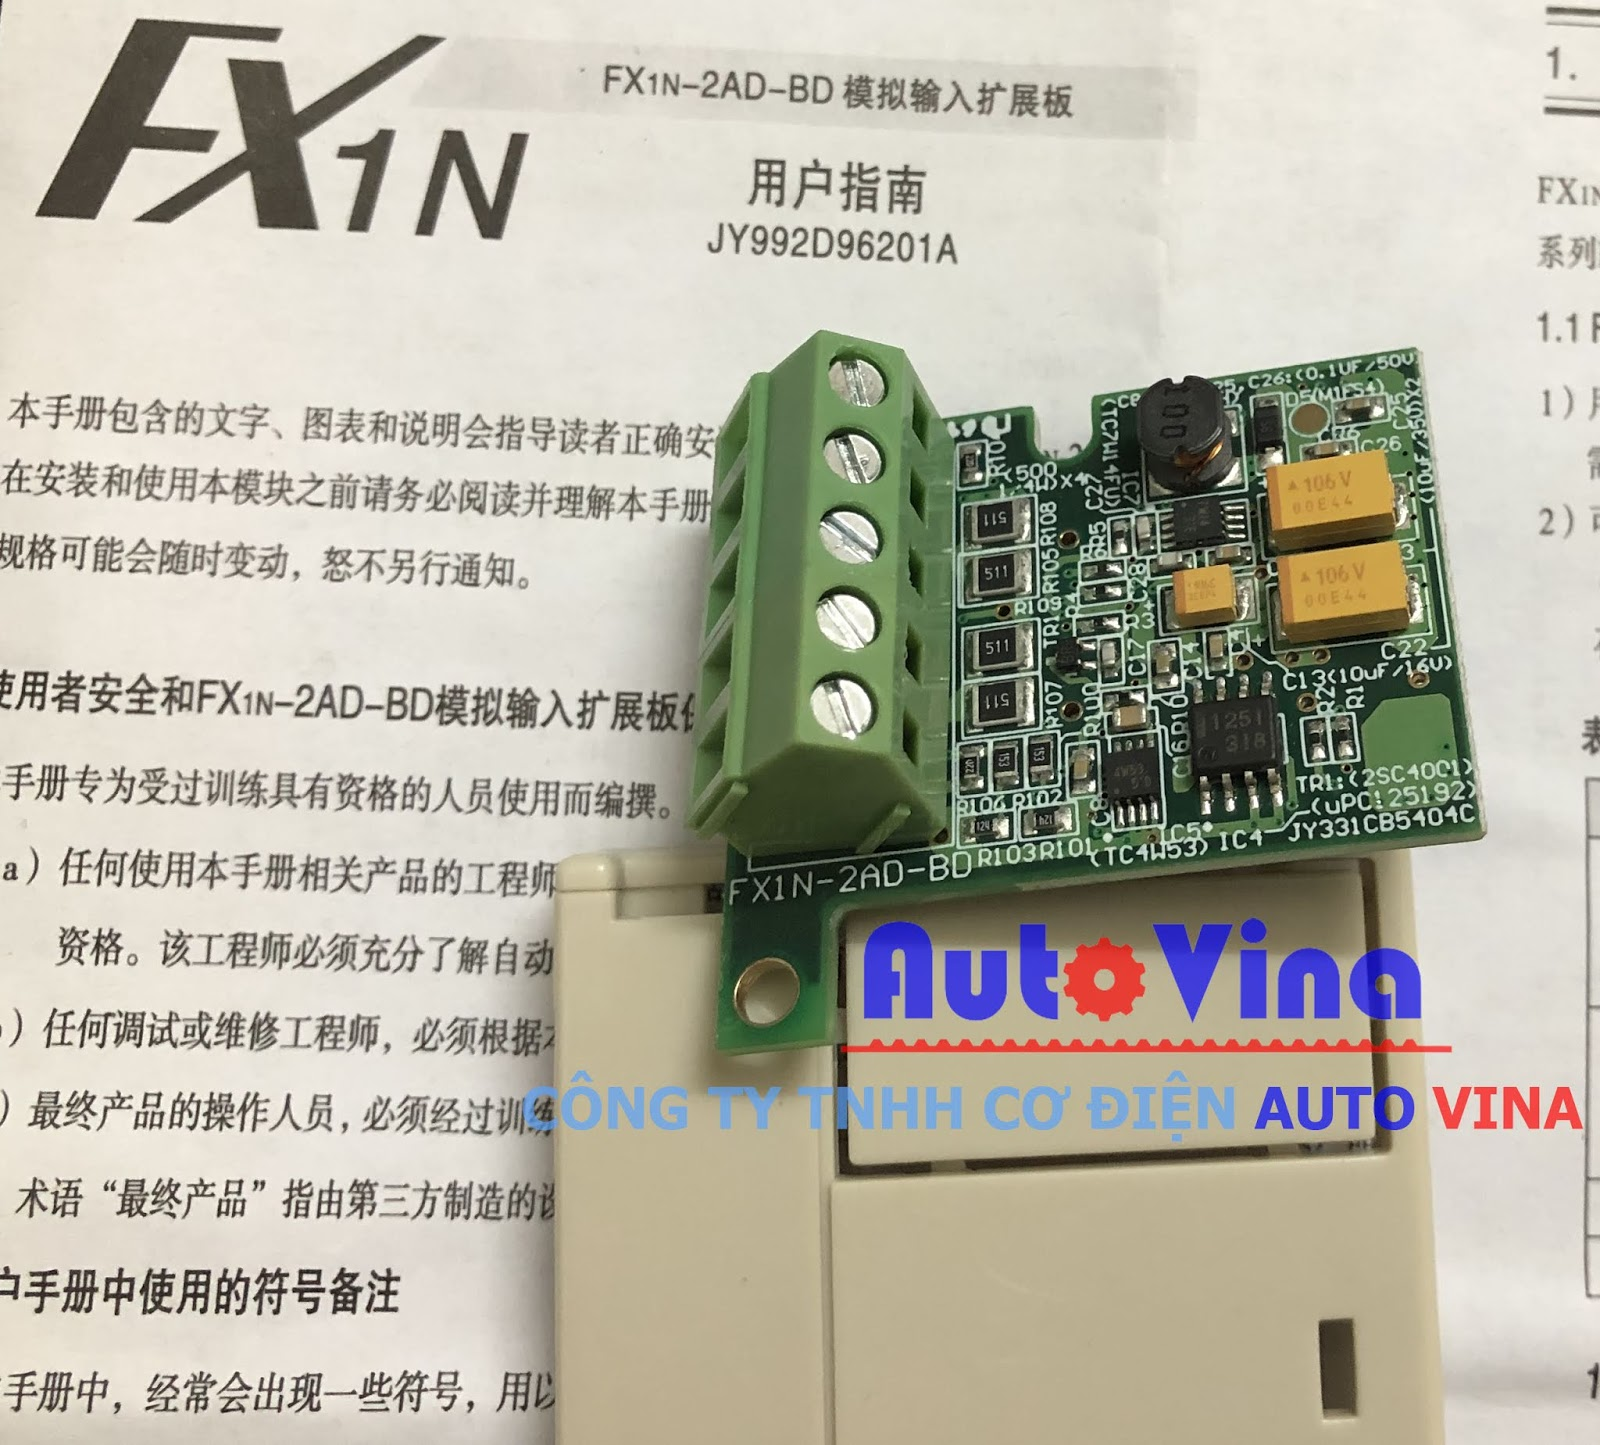 FX1N-2AD-BD analog input expansion board